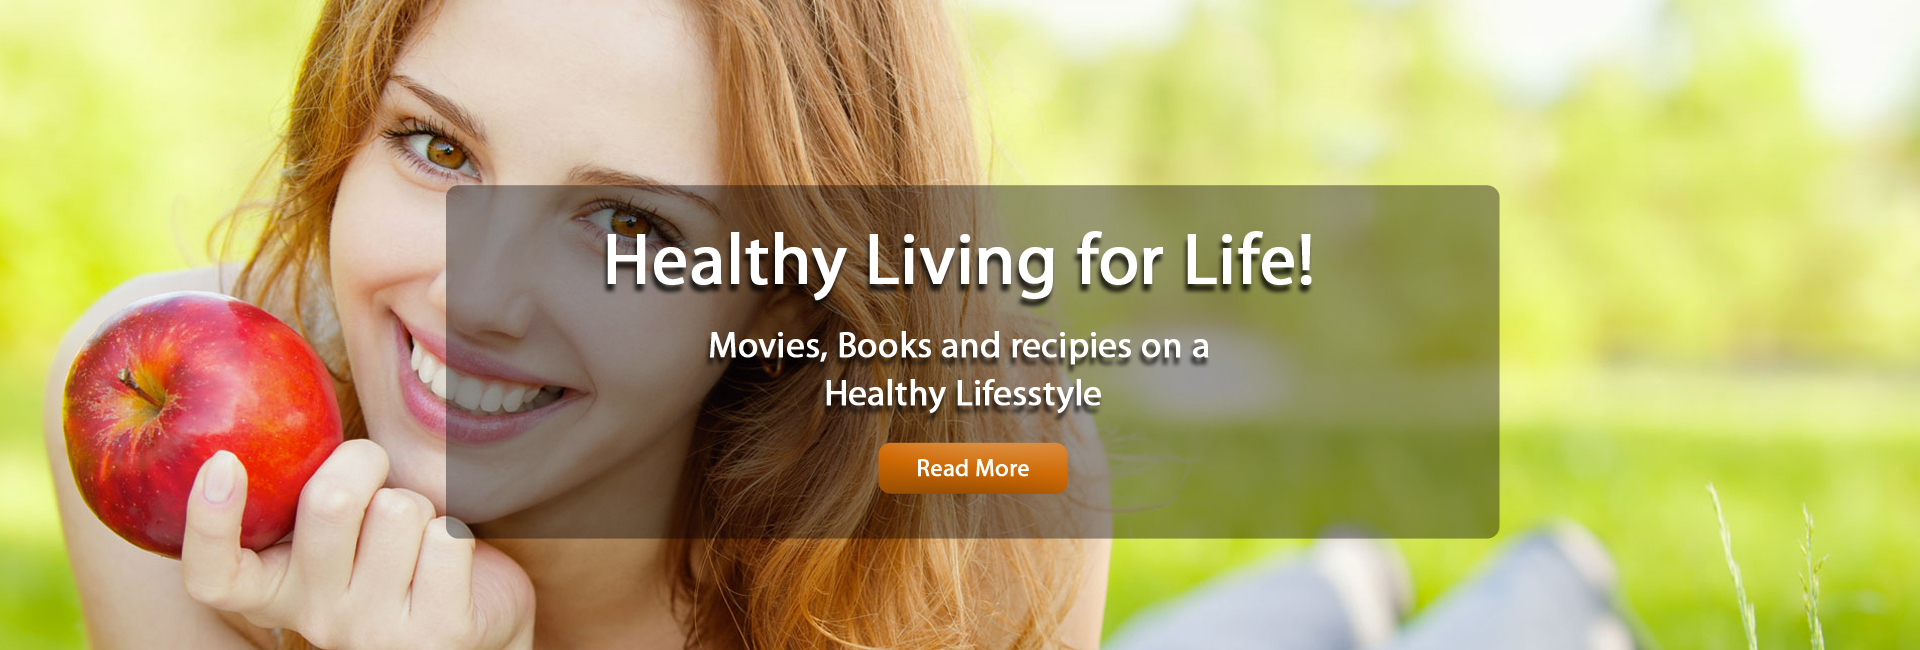 Healthy Living for life